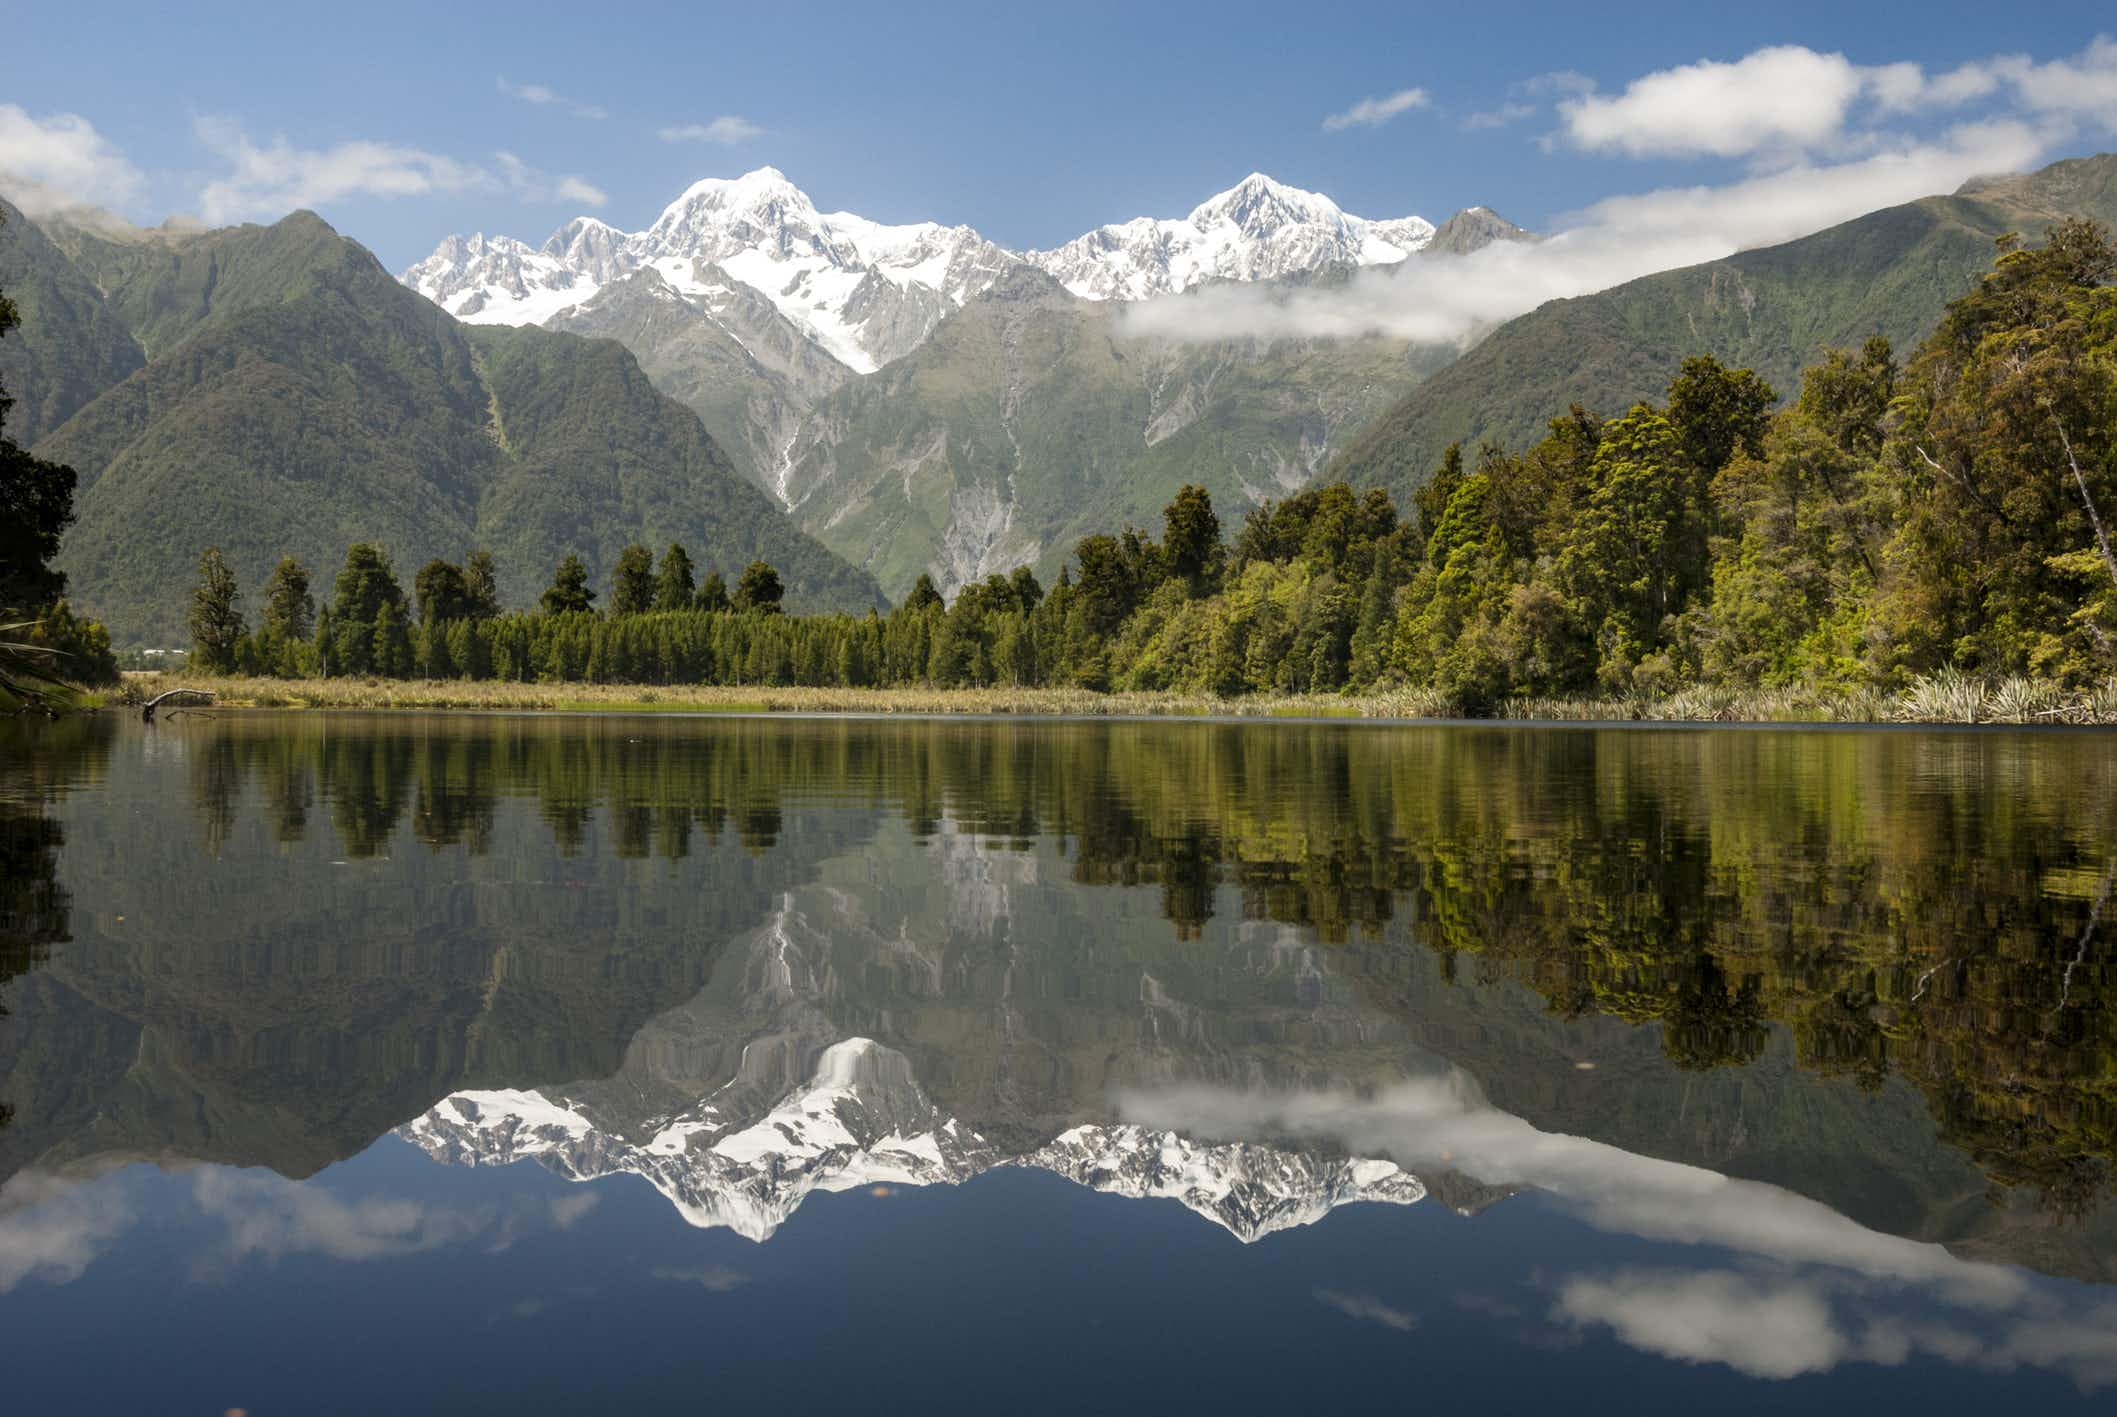 Tourists advised to be prepared after Welsh trekker gets lost in wilds of New Zealand in jeans and sneakers